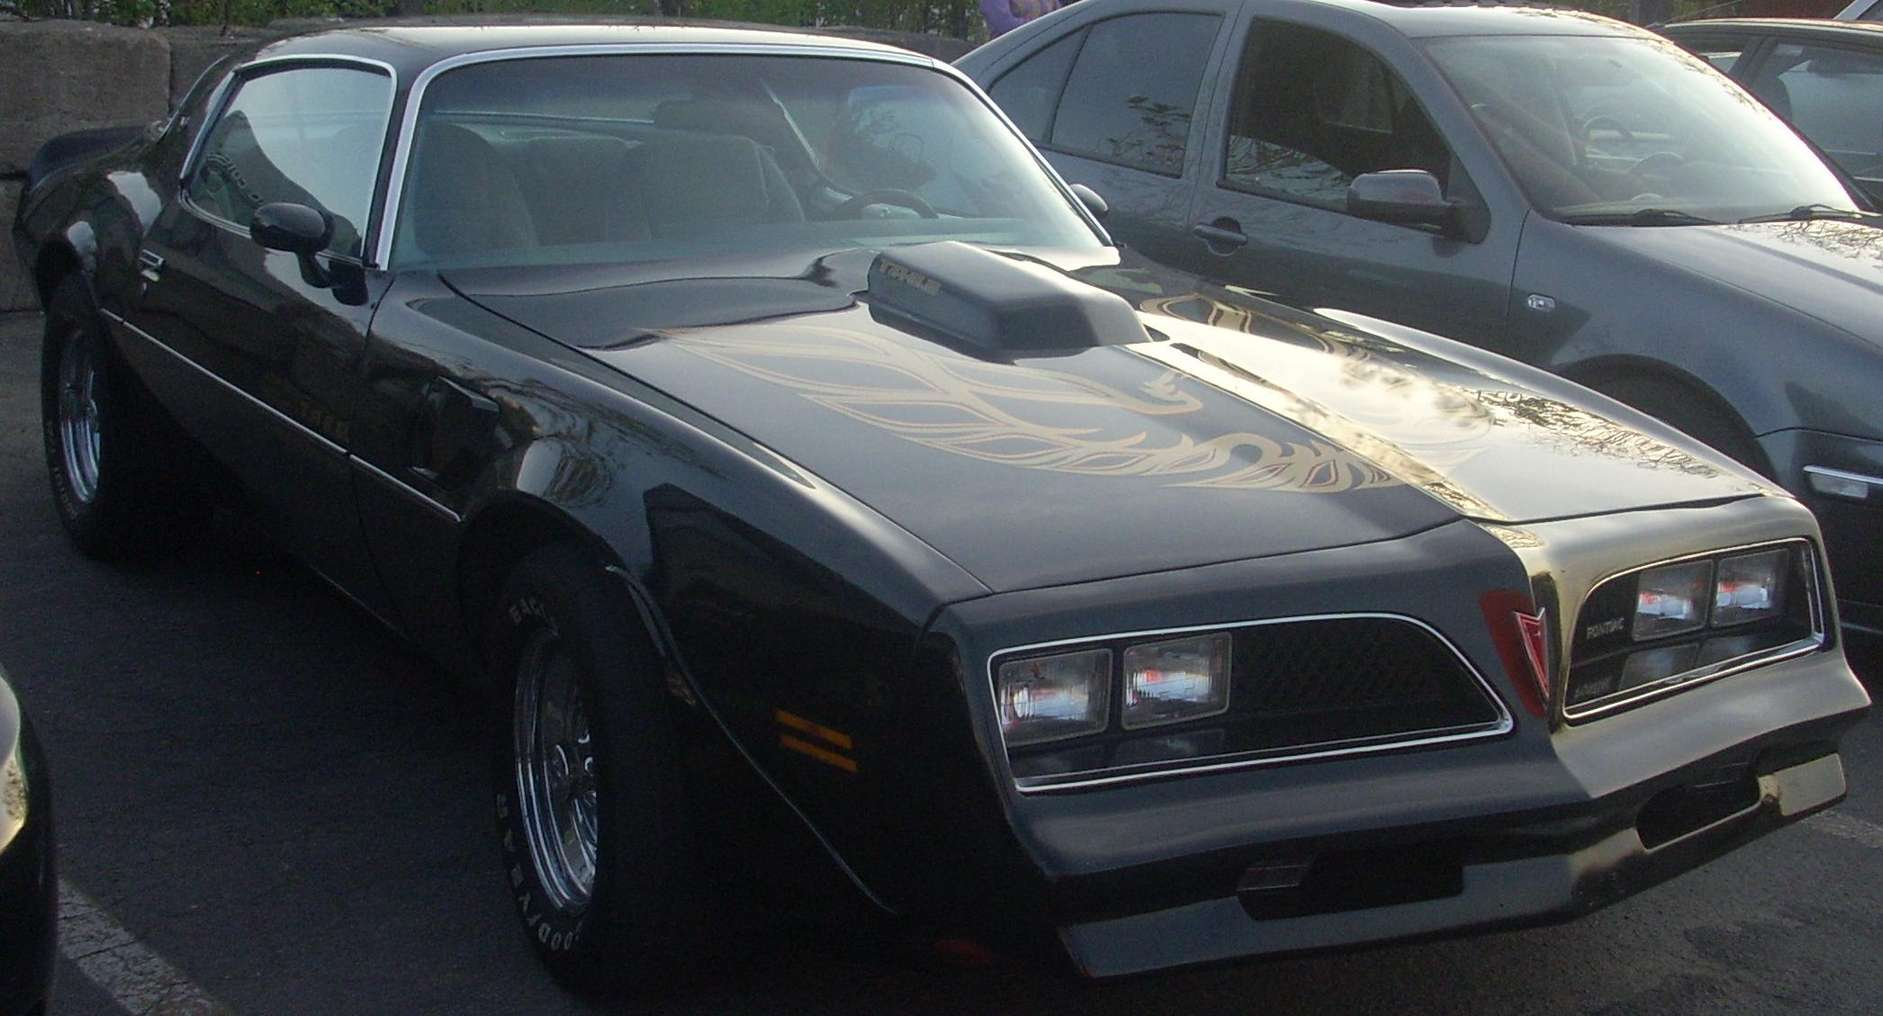 Pontiac Firebird Trans Am #7090020